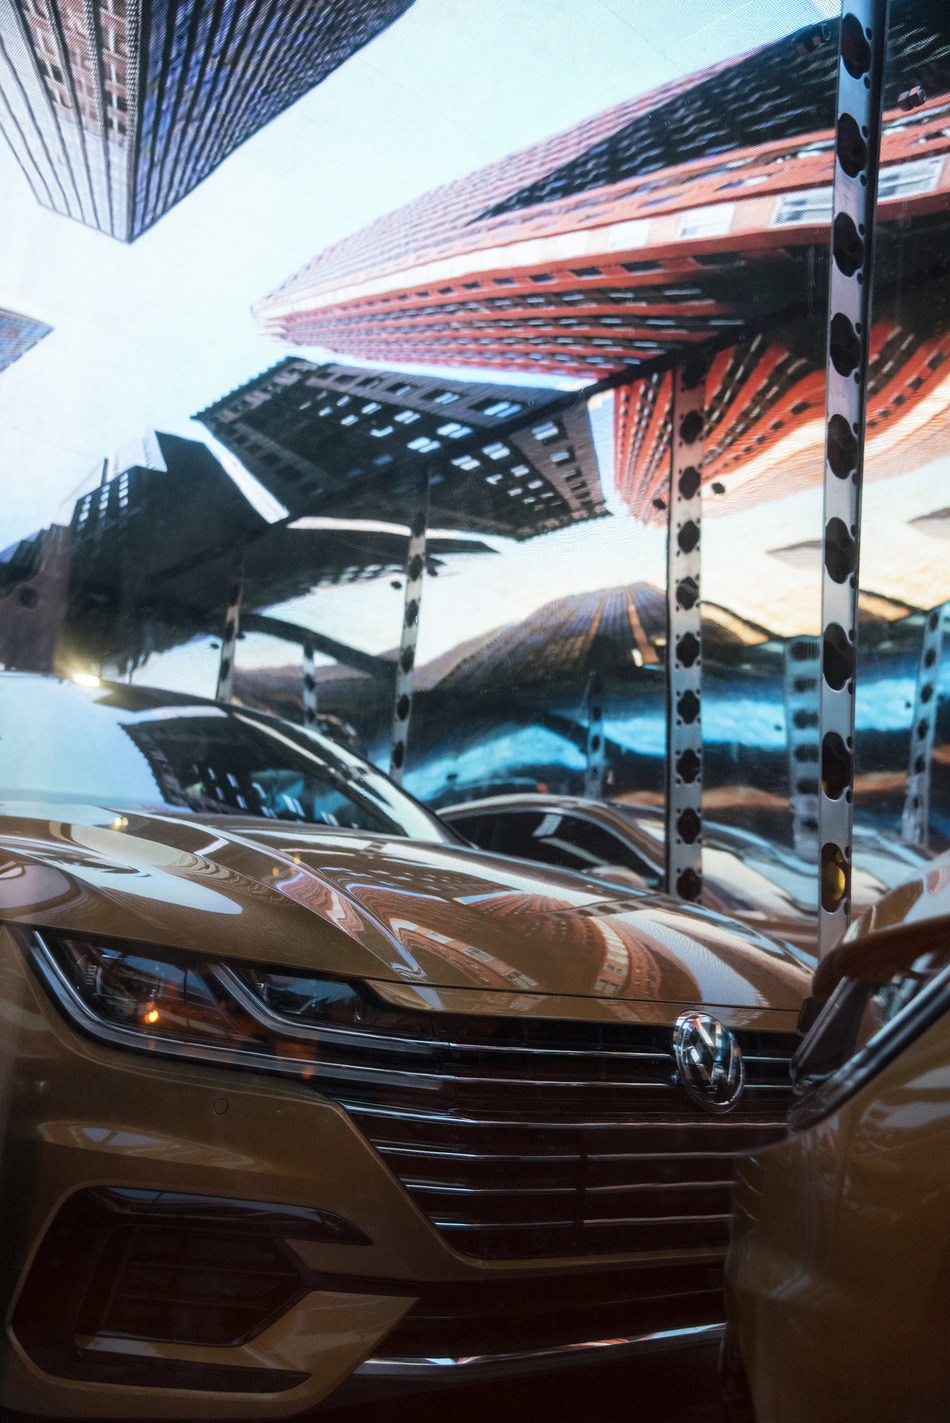 The Volkswagen Arteon as seen in the #LifeinSmartLuxury outdoor exhibit at the Museum of Contemporary Art Toronto on display until October 21, 2018 (CNW Group/Volkswagen Canada Inc.)